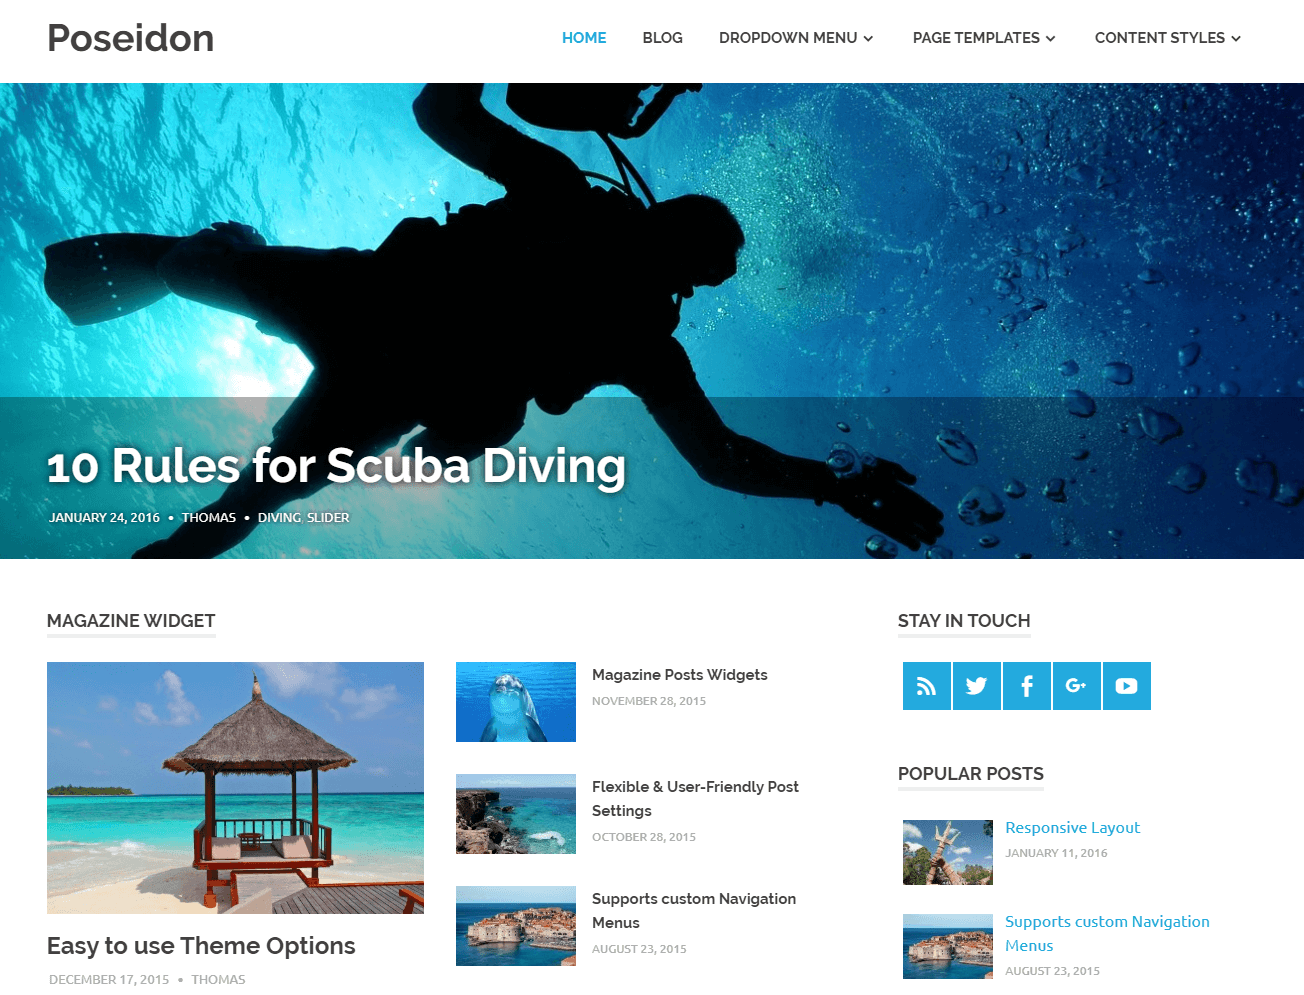 Poseidon free WordPress blog theme